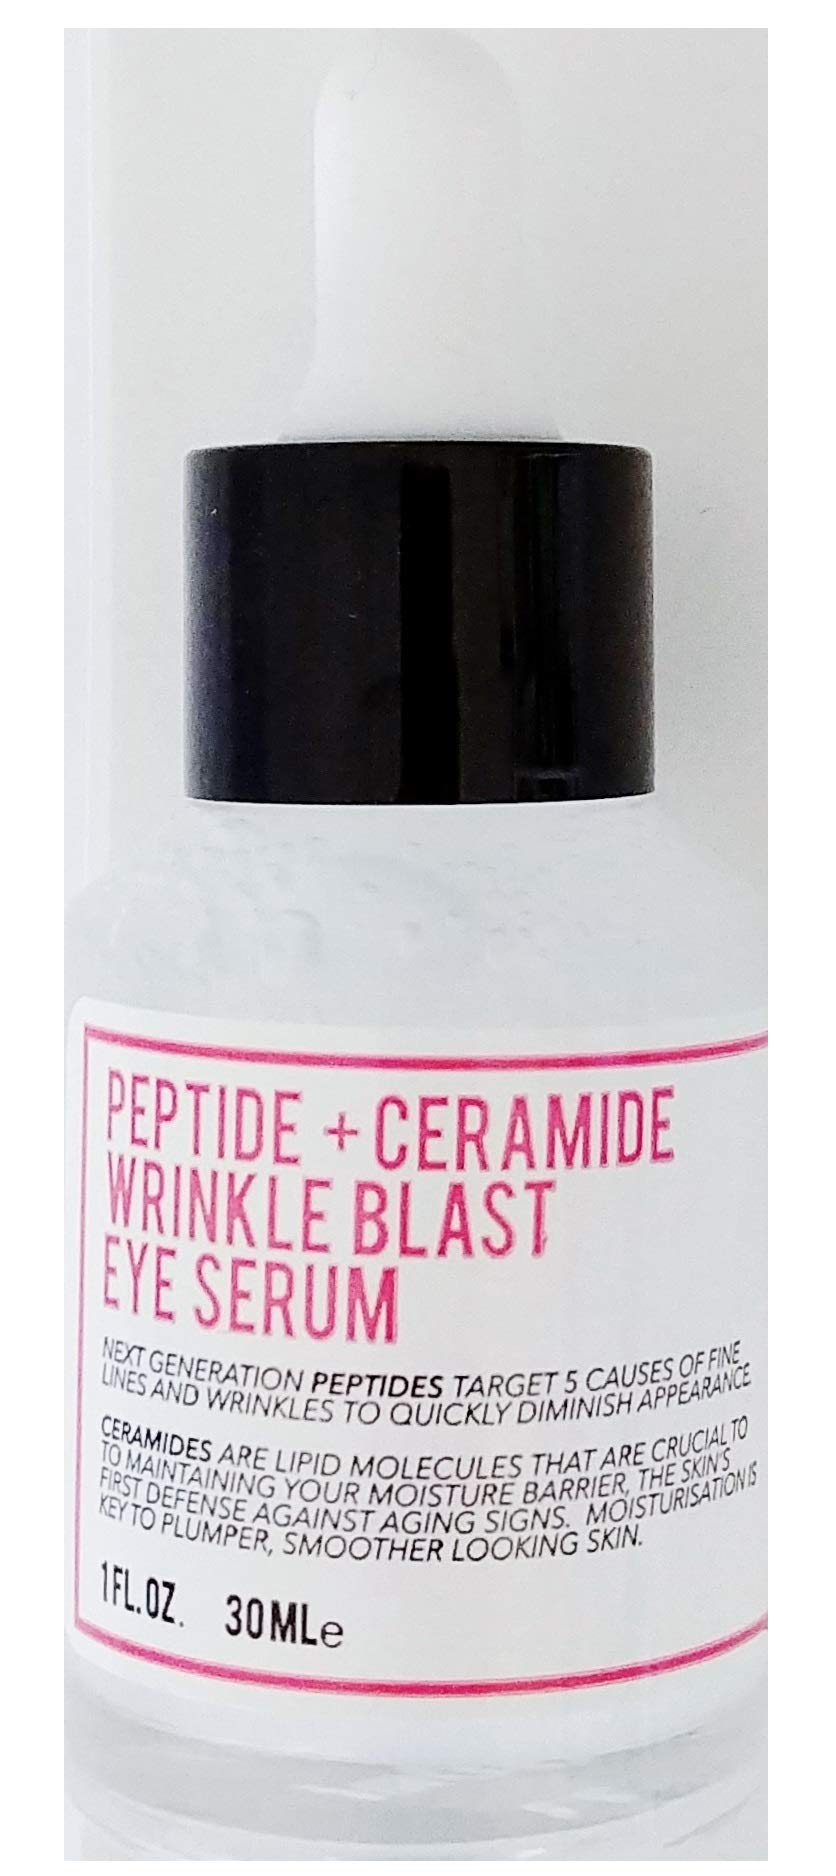 The Herbiarie - The Herbiarie Peptide and Ceramide Wrinkle Blast Eye Serum - Botanical Based Skincare - Target Fine Line and Wrinkles To Diminish Appearance